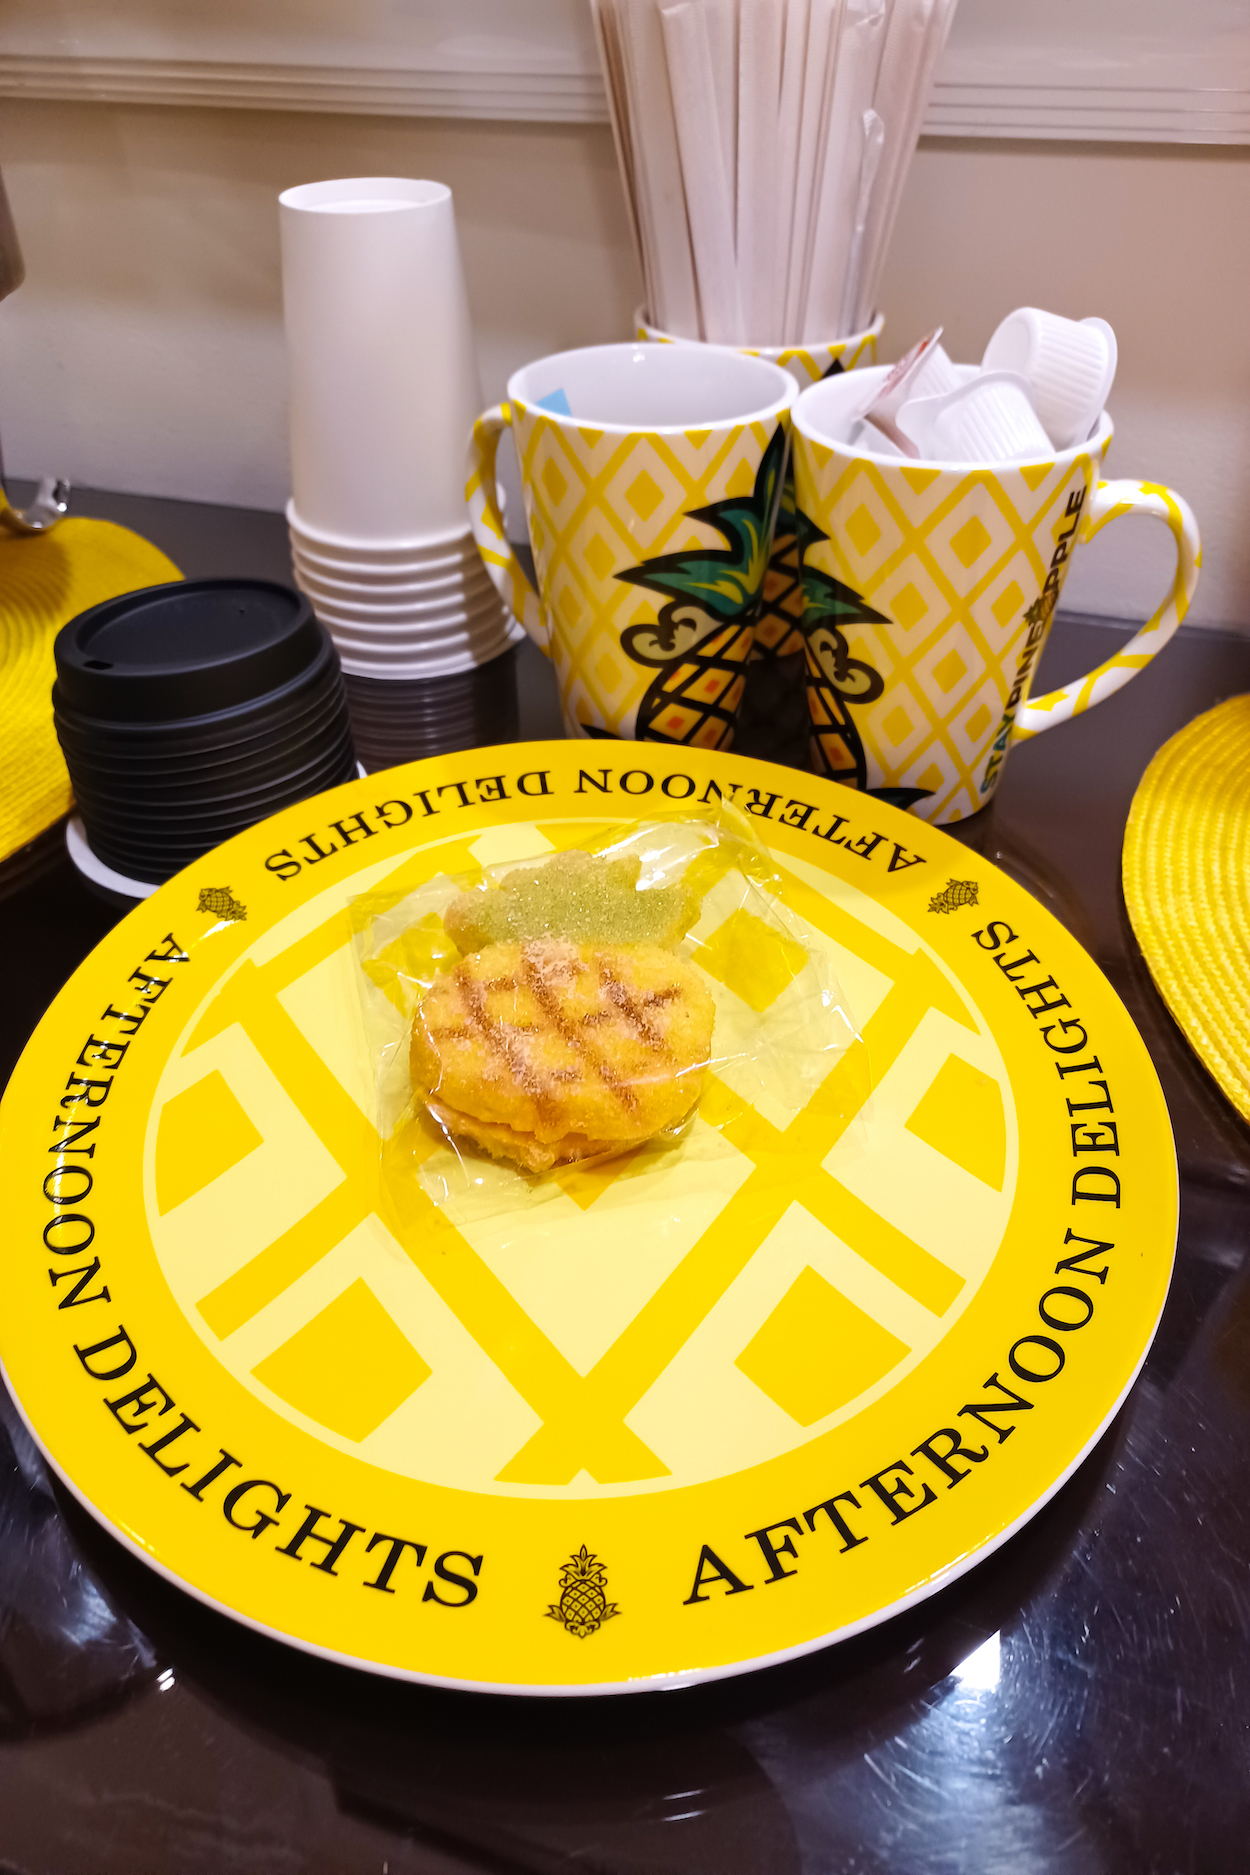 A pineapple shaped sugar cookie sits on a plate at StayPineapple Hotel New York City